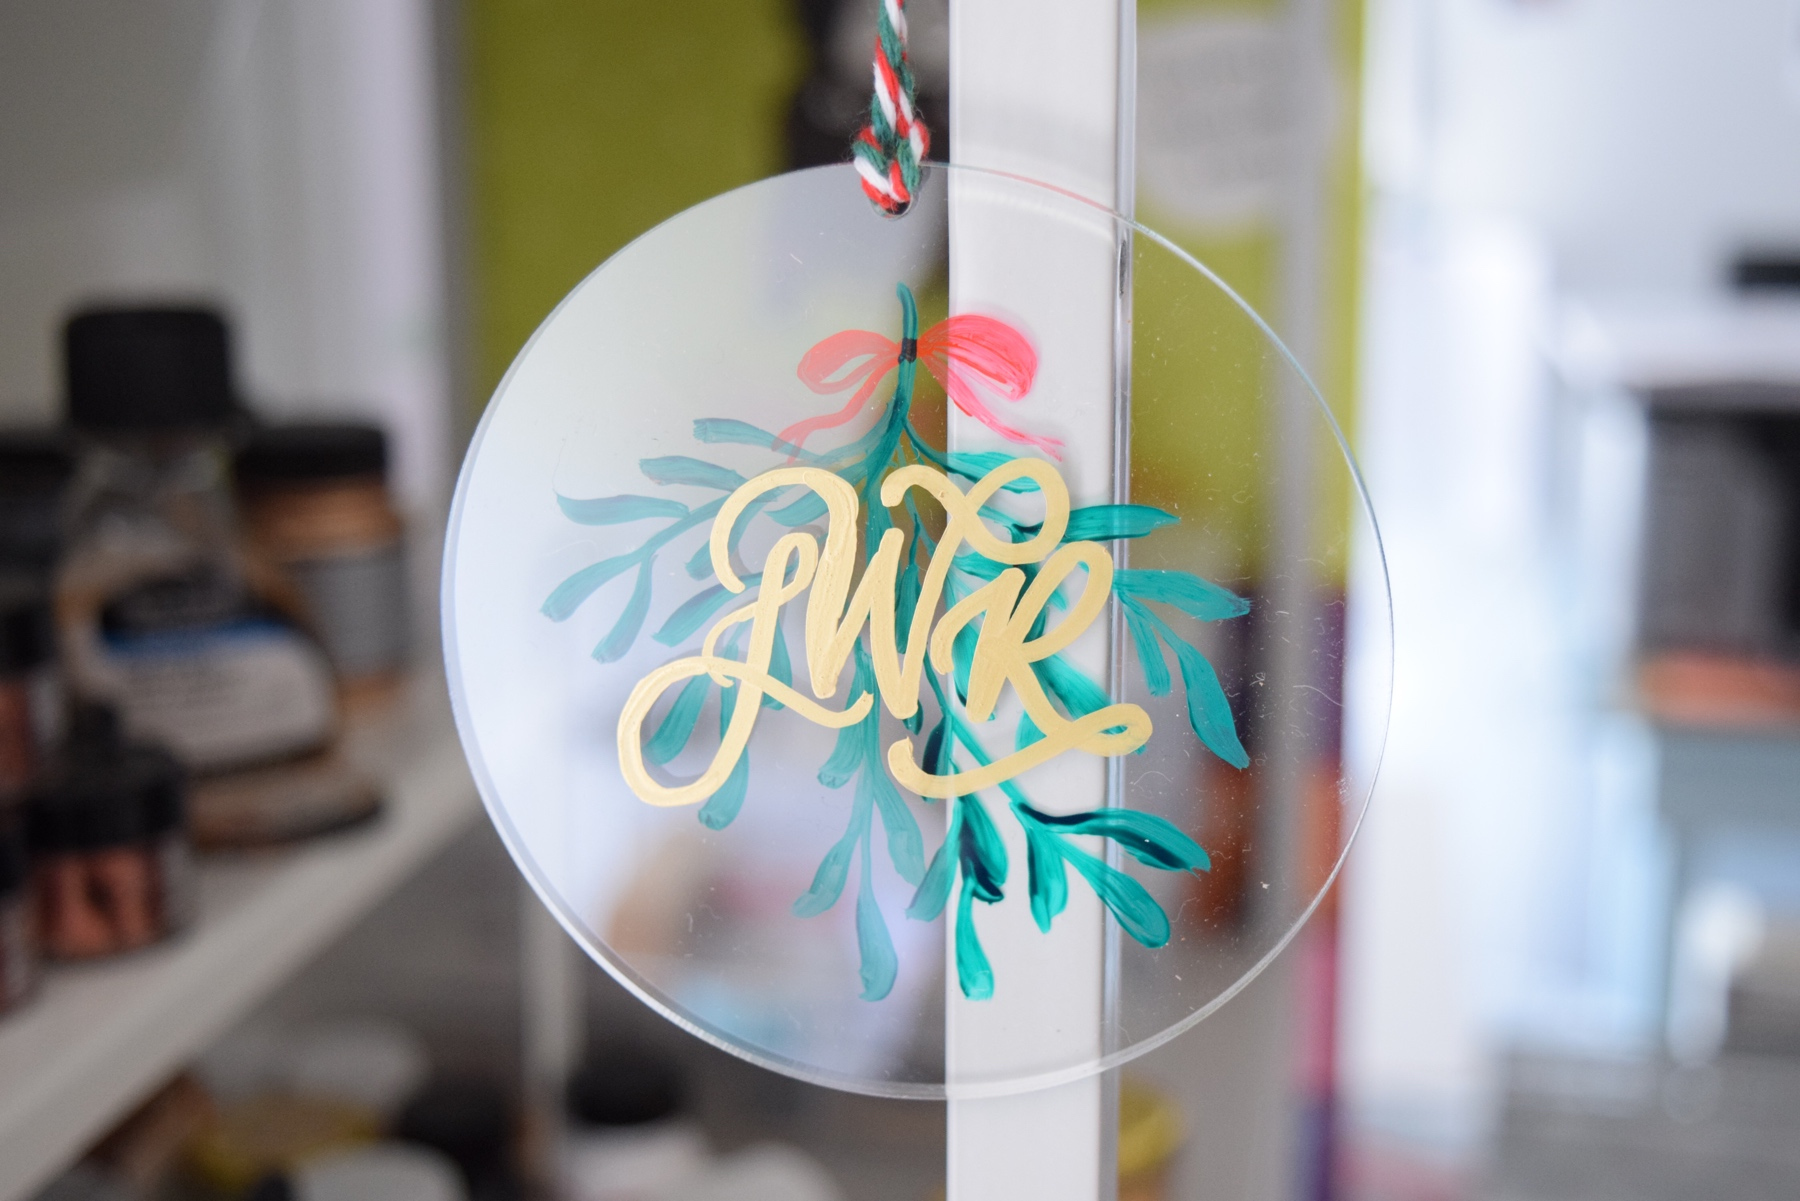 Modern Personalized Clear Acrylic Ornament   Modern Home Christmas Decor   Custom Calligraphy Ornament   Personalized Keepsake Ornament